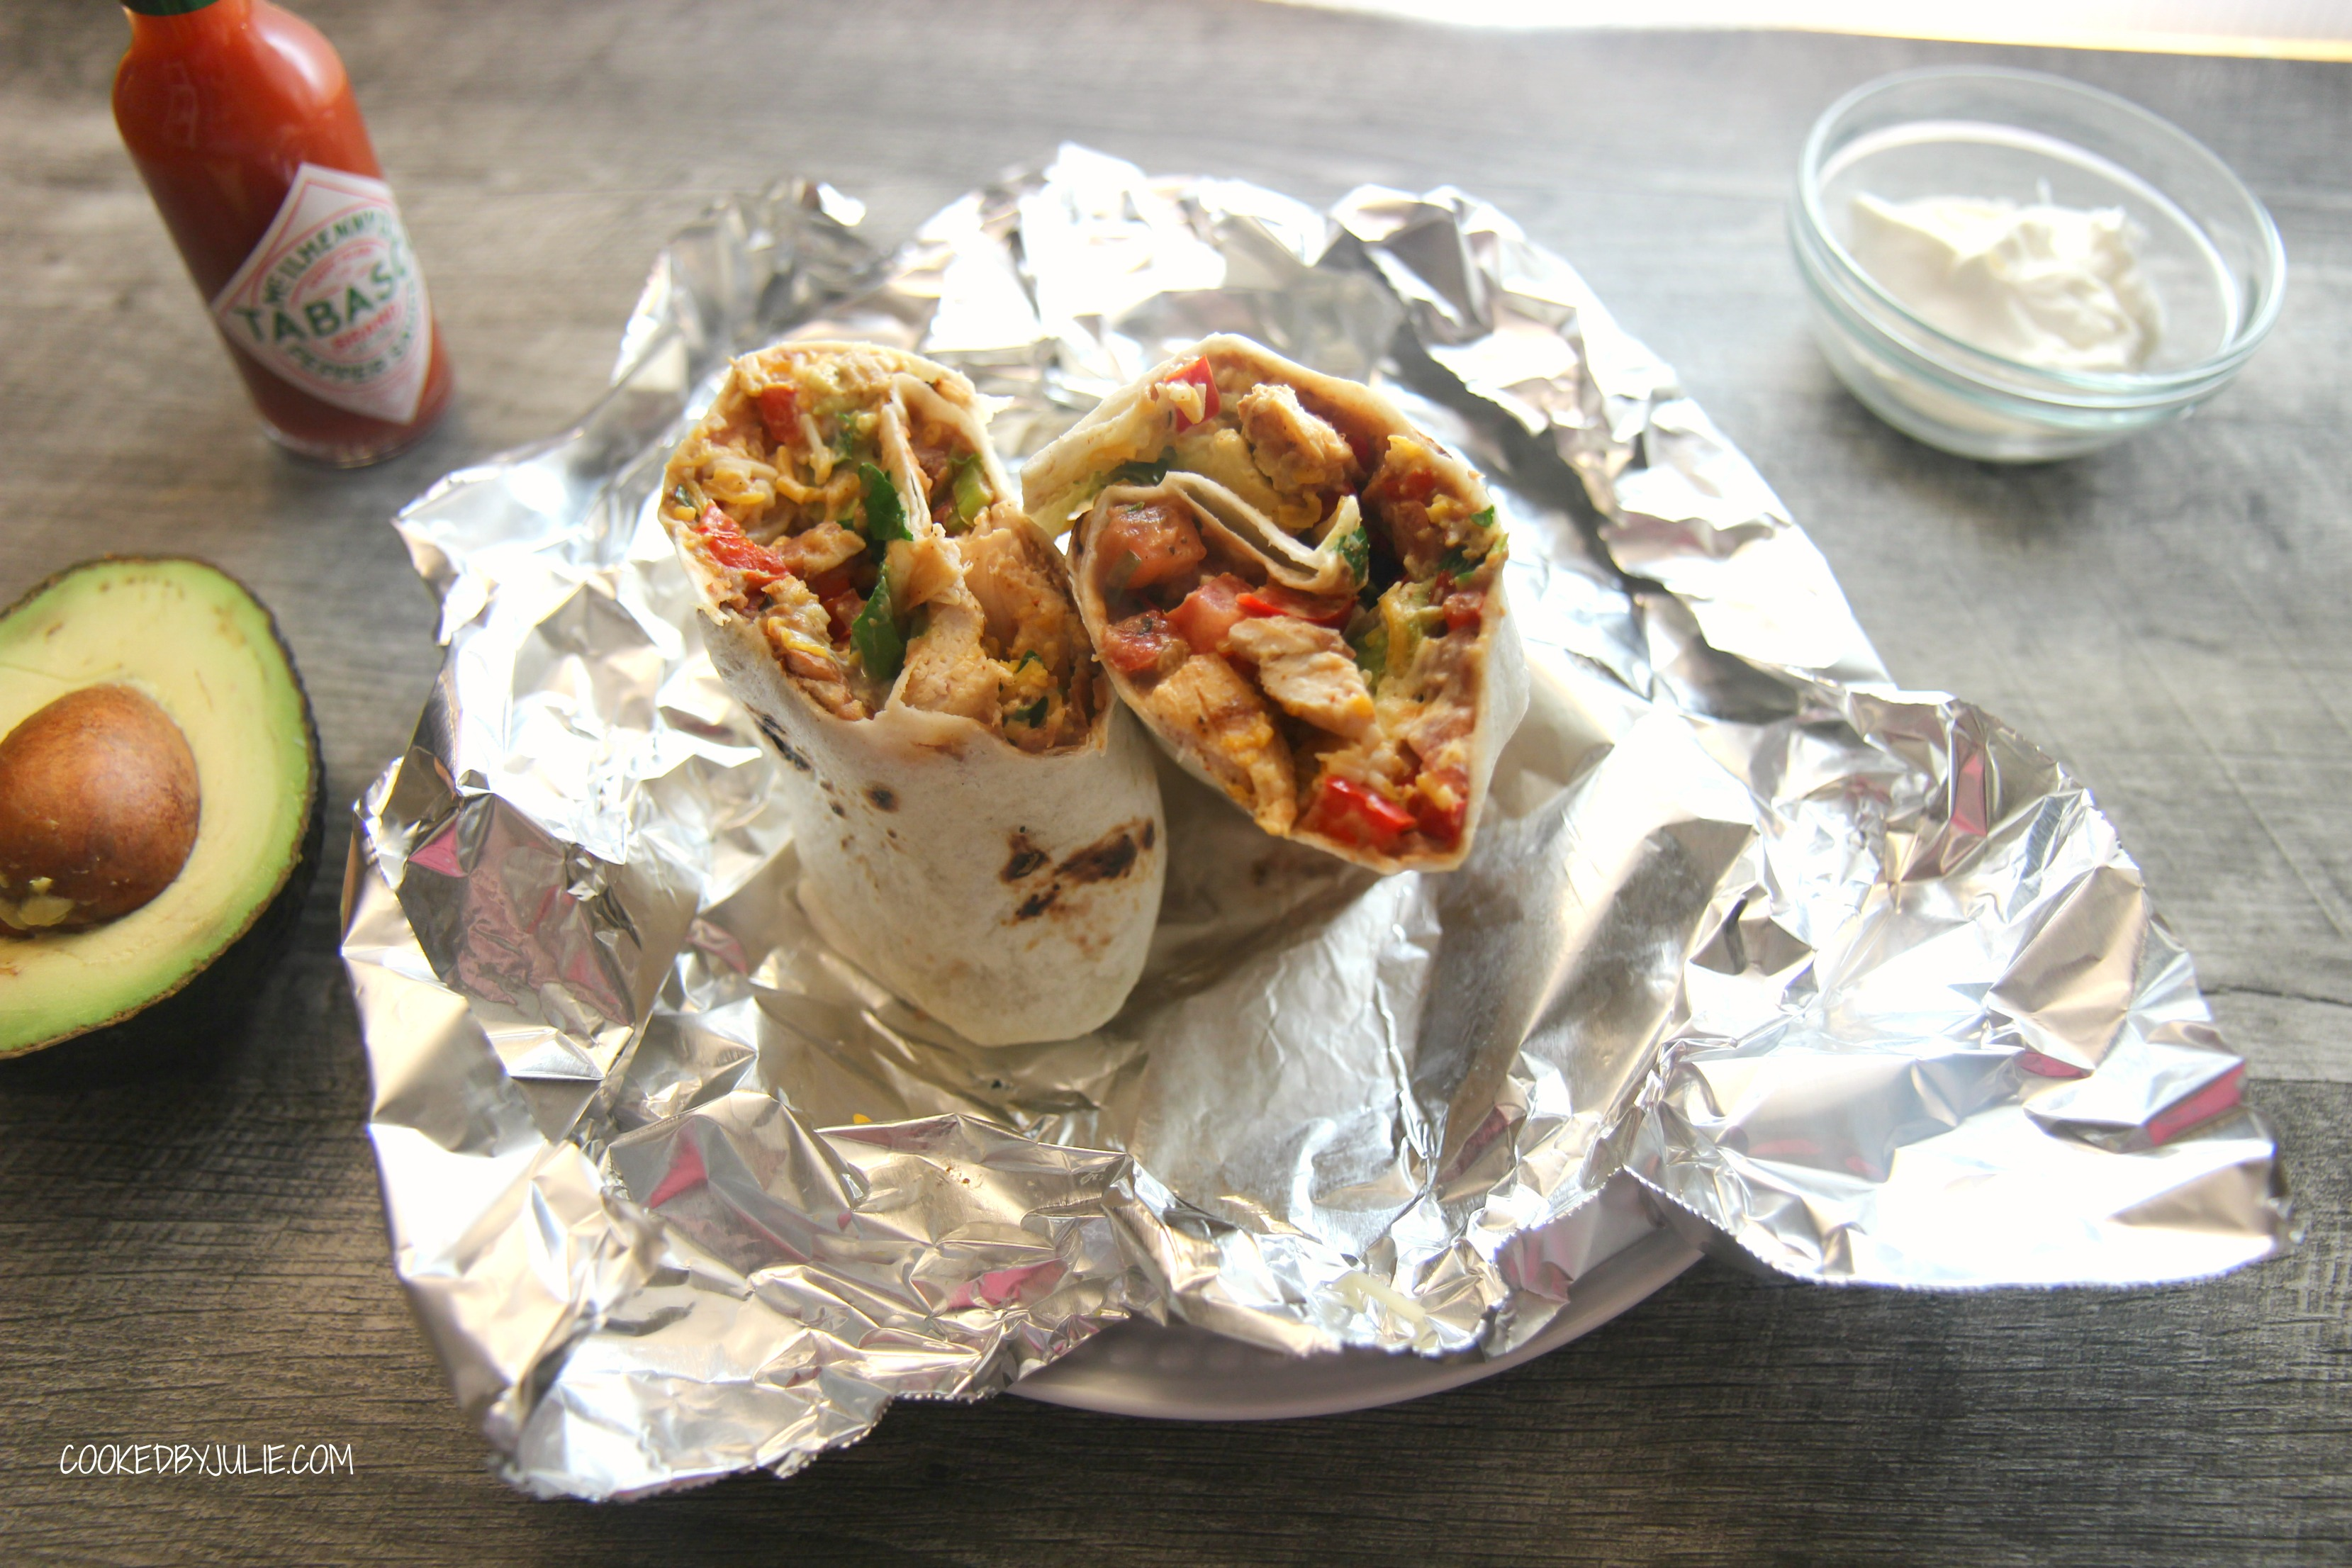 Wrap in foil and pack for a delicious homemade lunch.